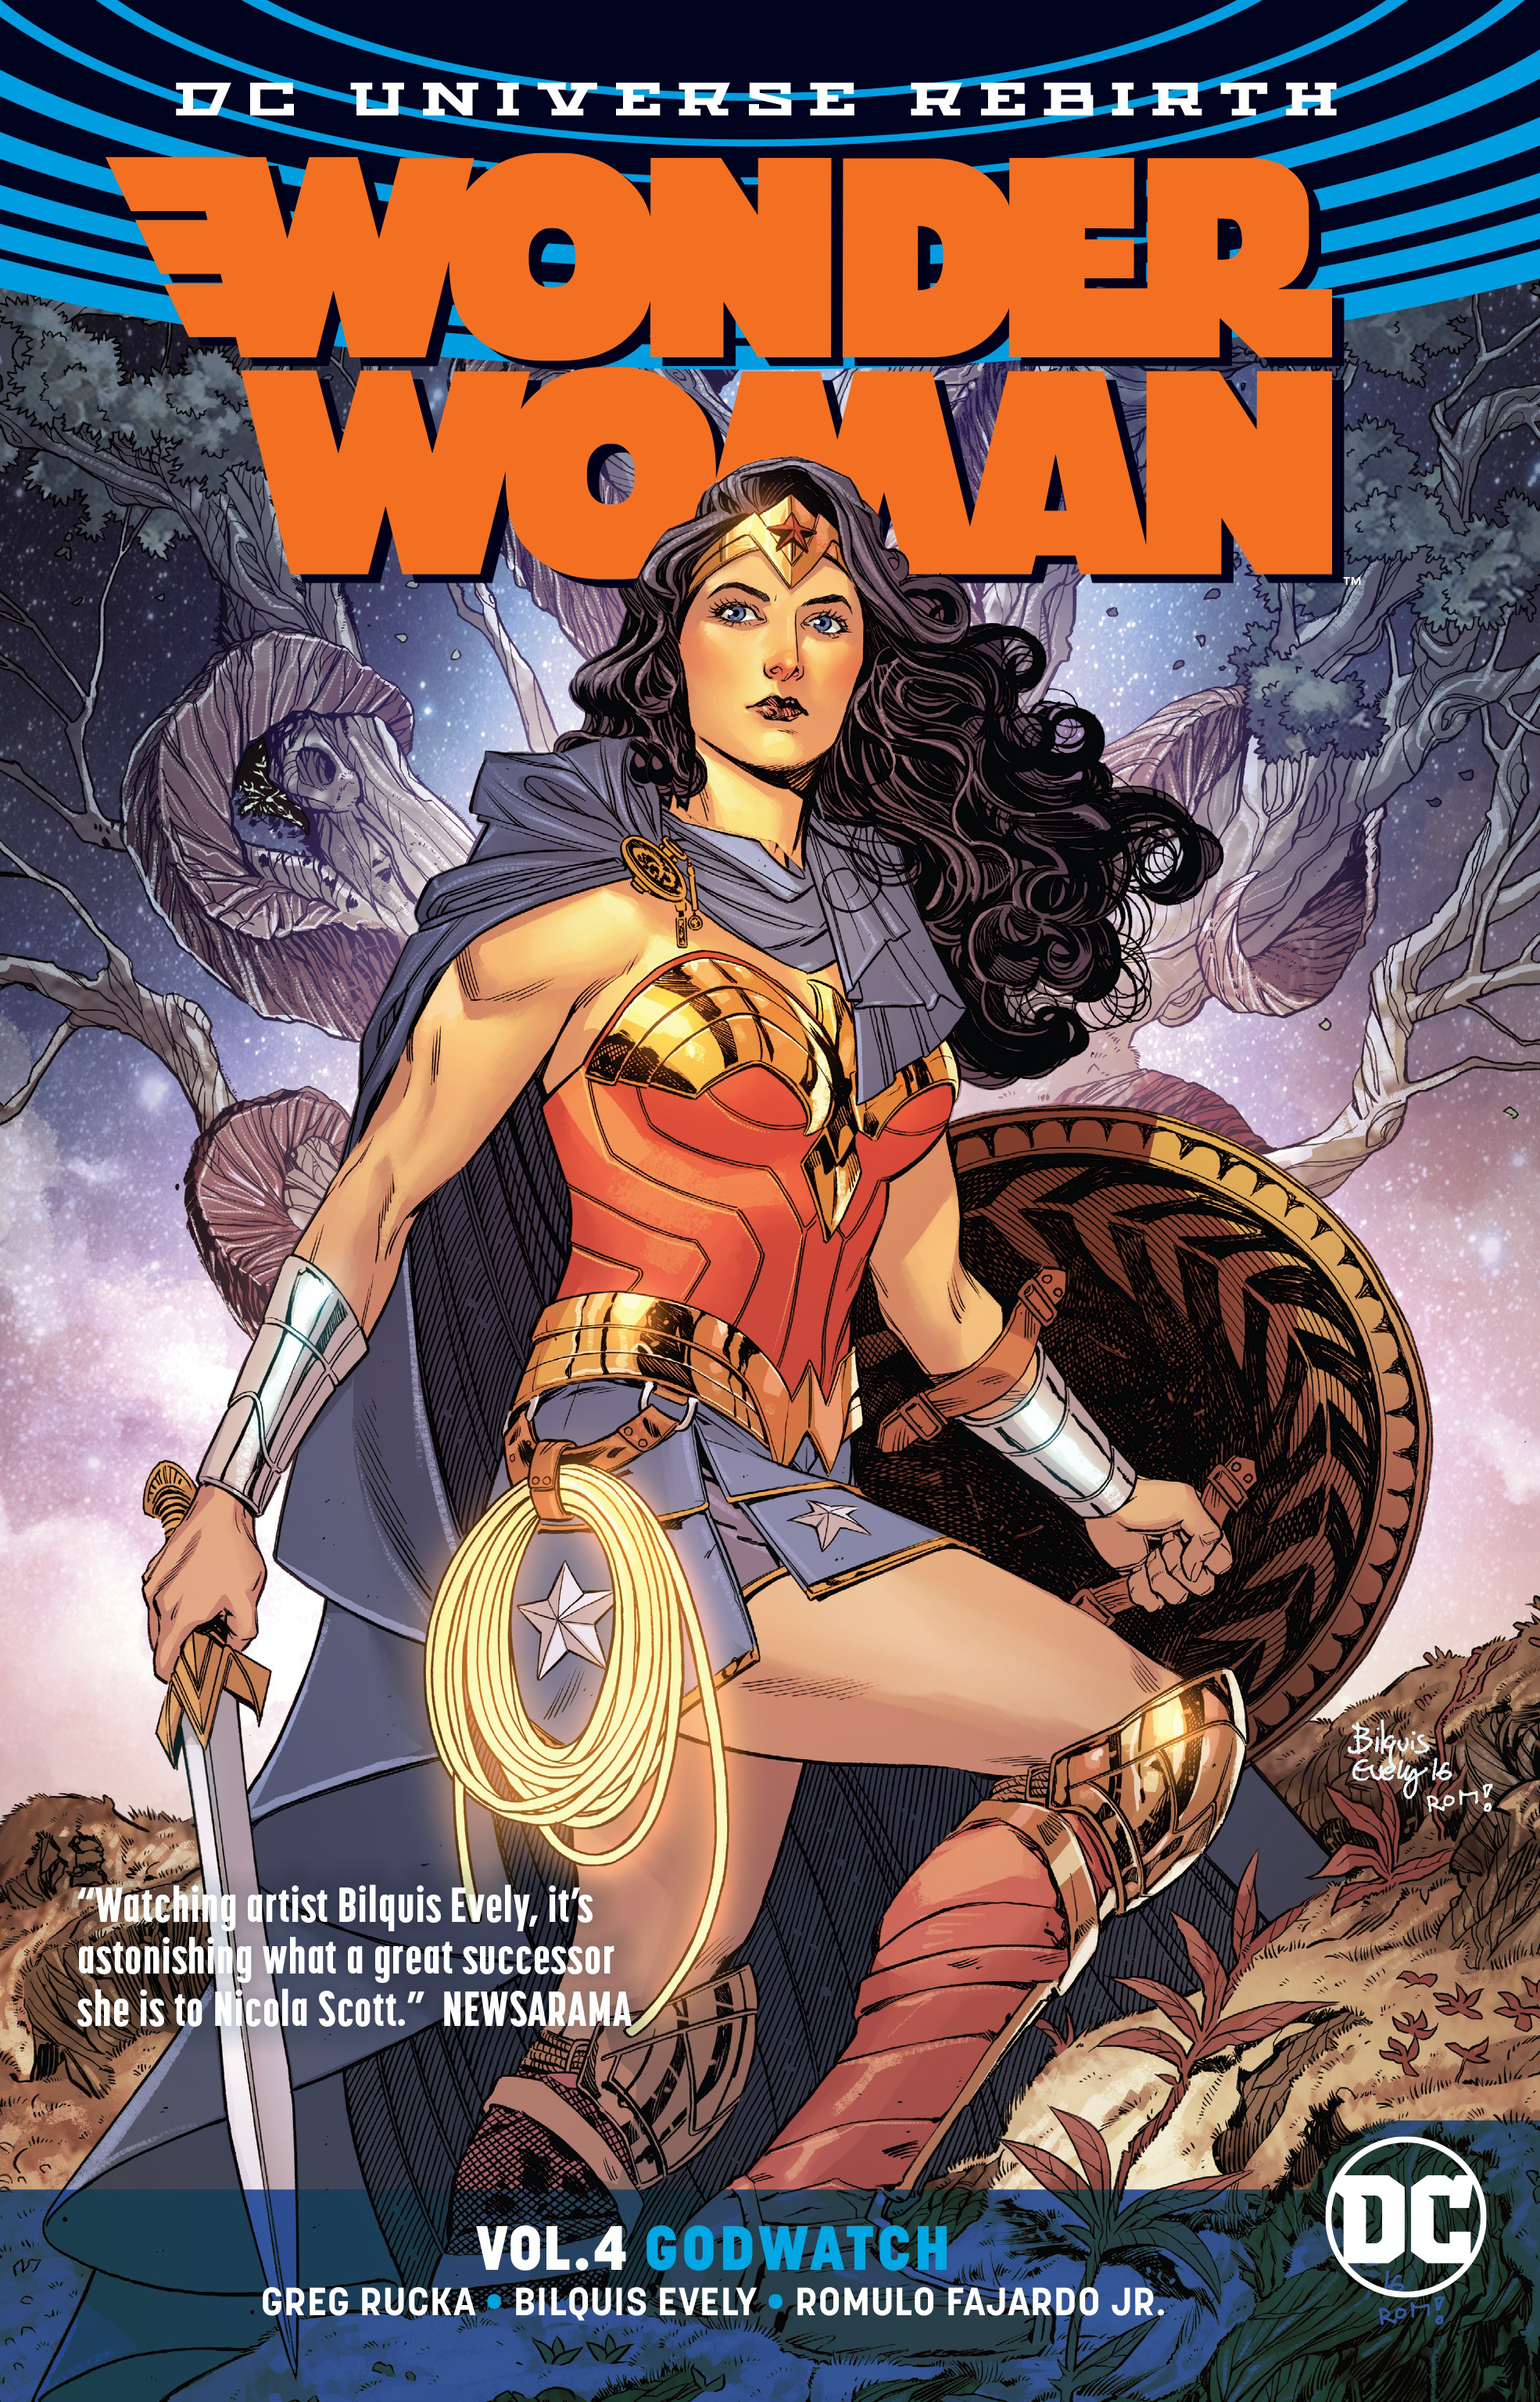 WONDER WOMAN TP VOL 04 GODWATCH